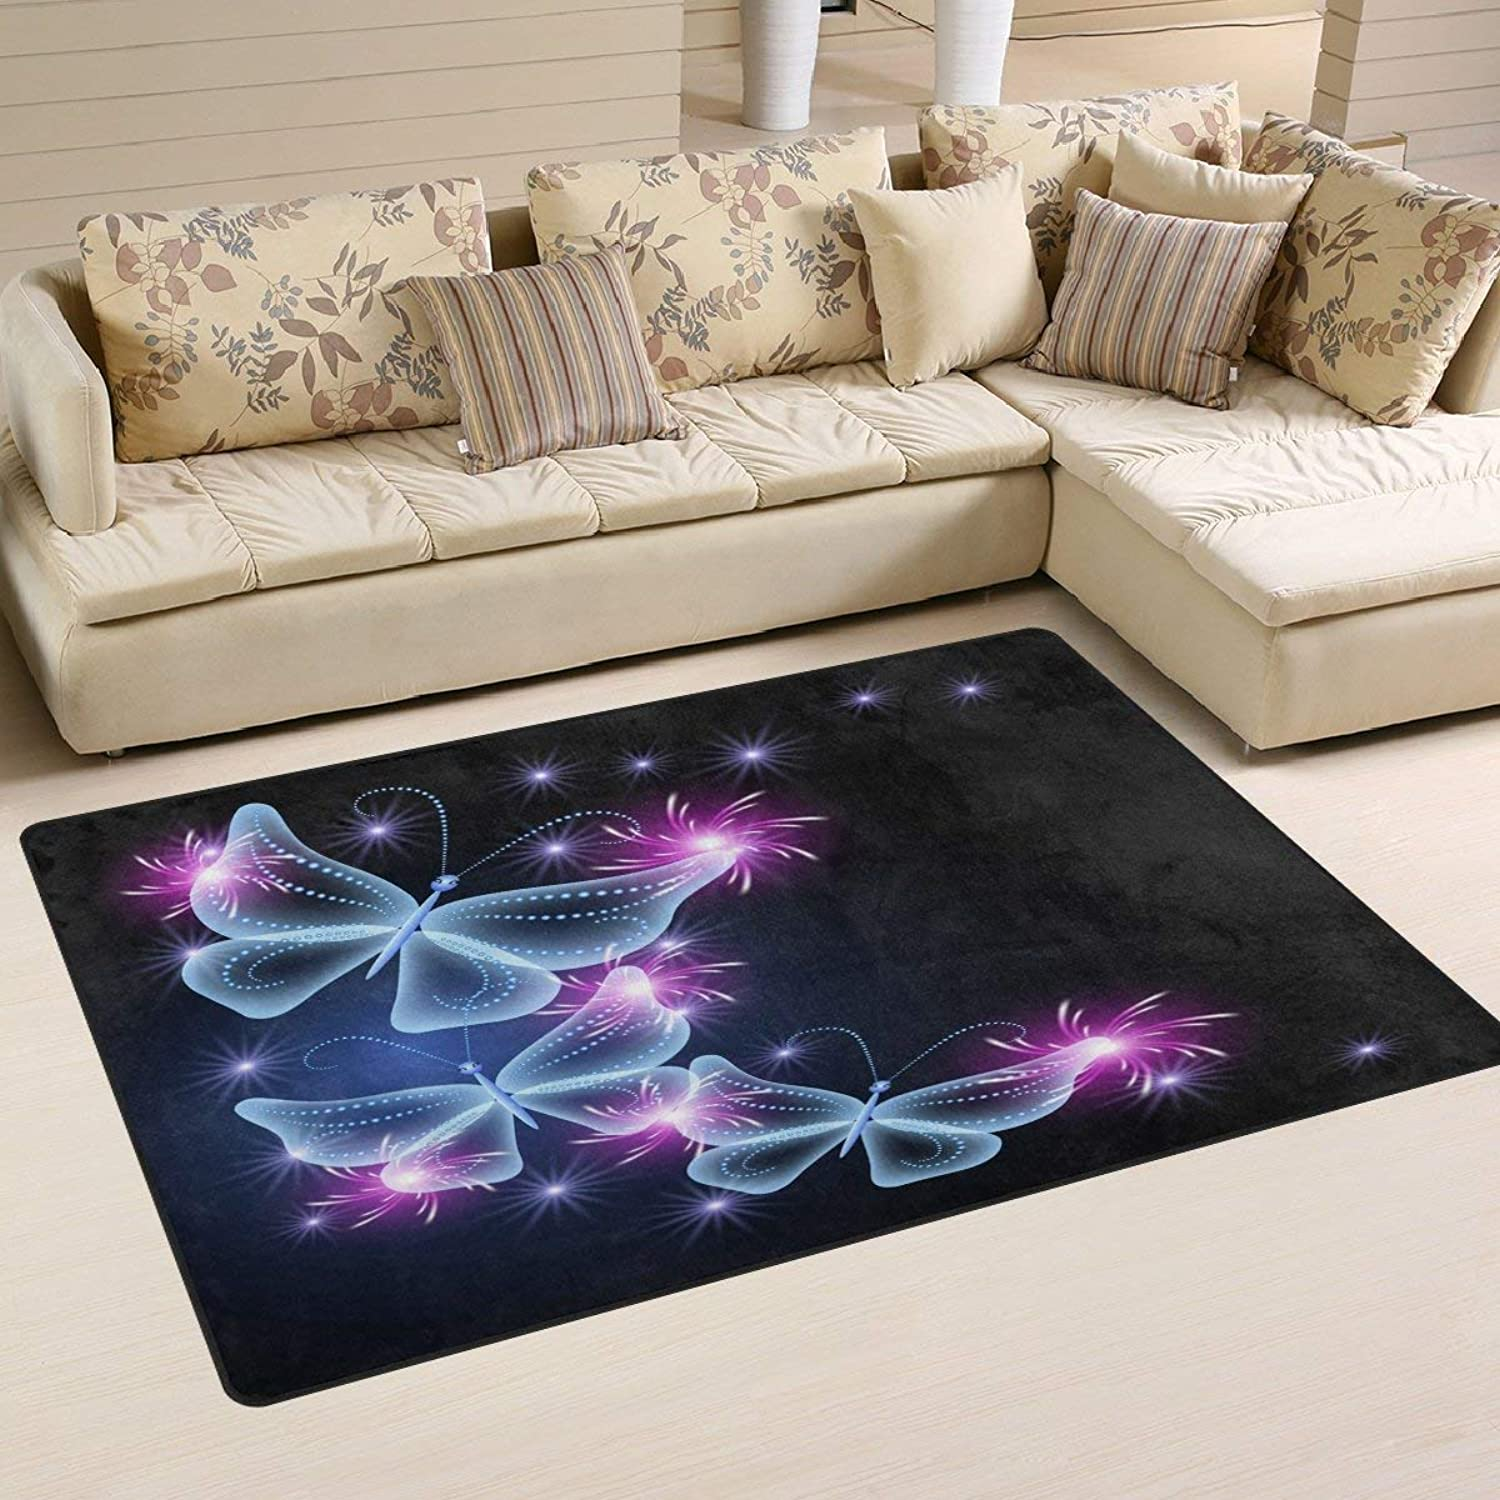 Black Butterfly Firework Star Area Rug Floor Mat Rug Indoor Front Door Kitchen and Living Room Bedroom Mats Rubber Non Slip